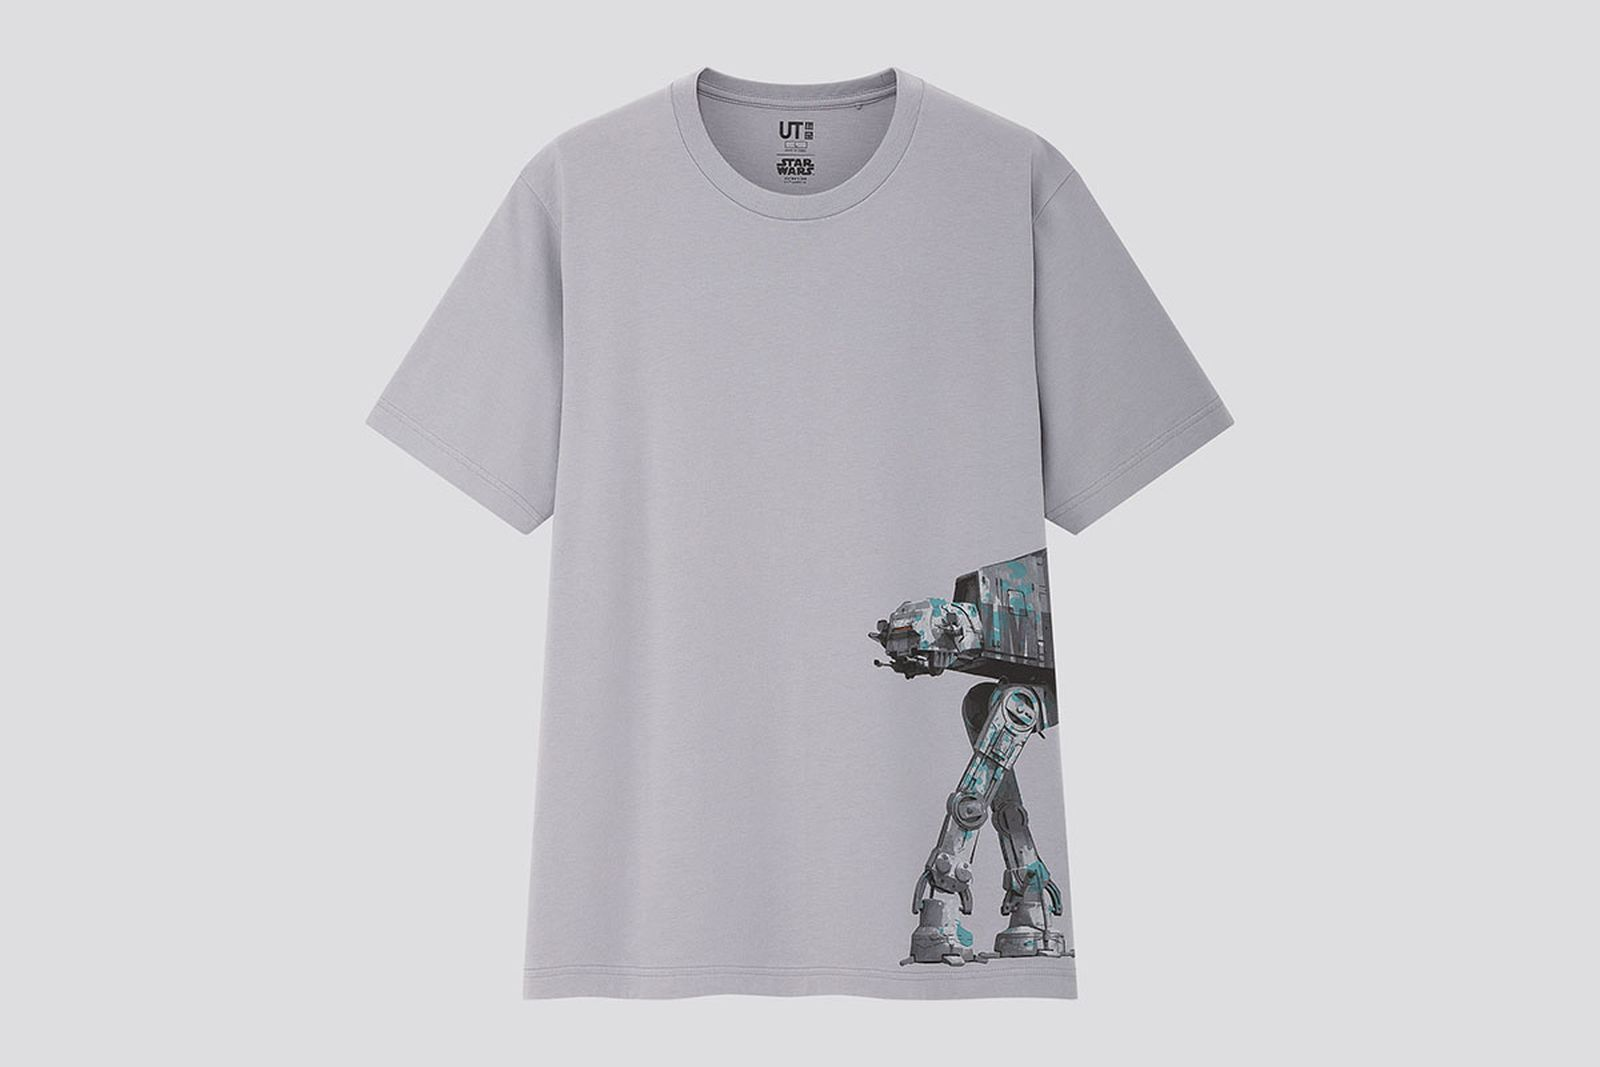 uniqlo-ut-star-wars-collection-13